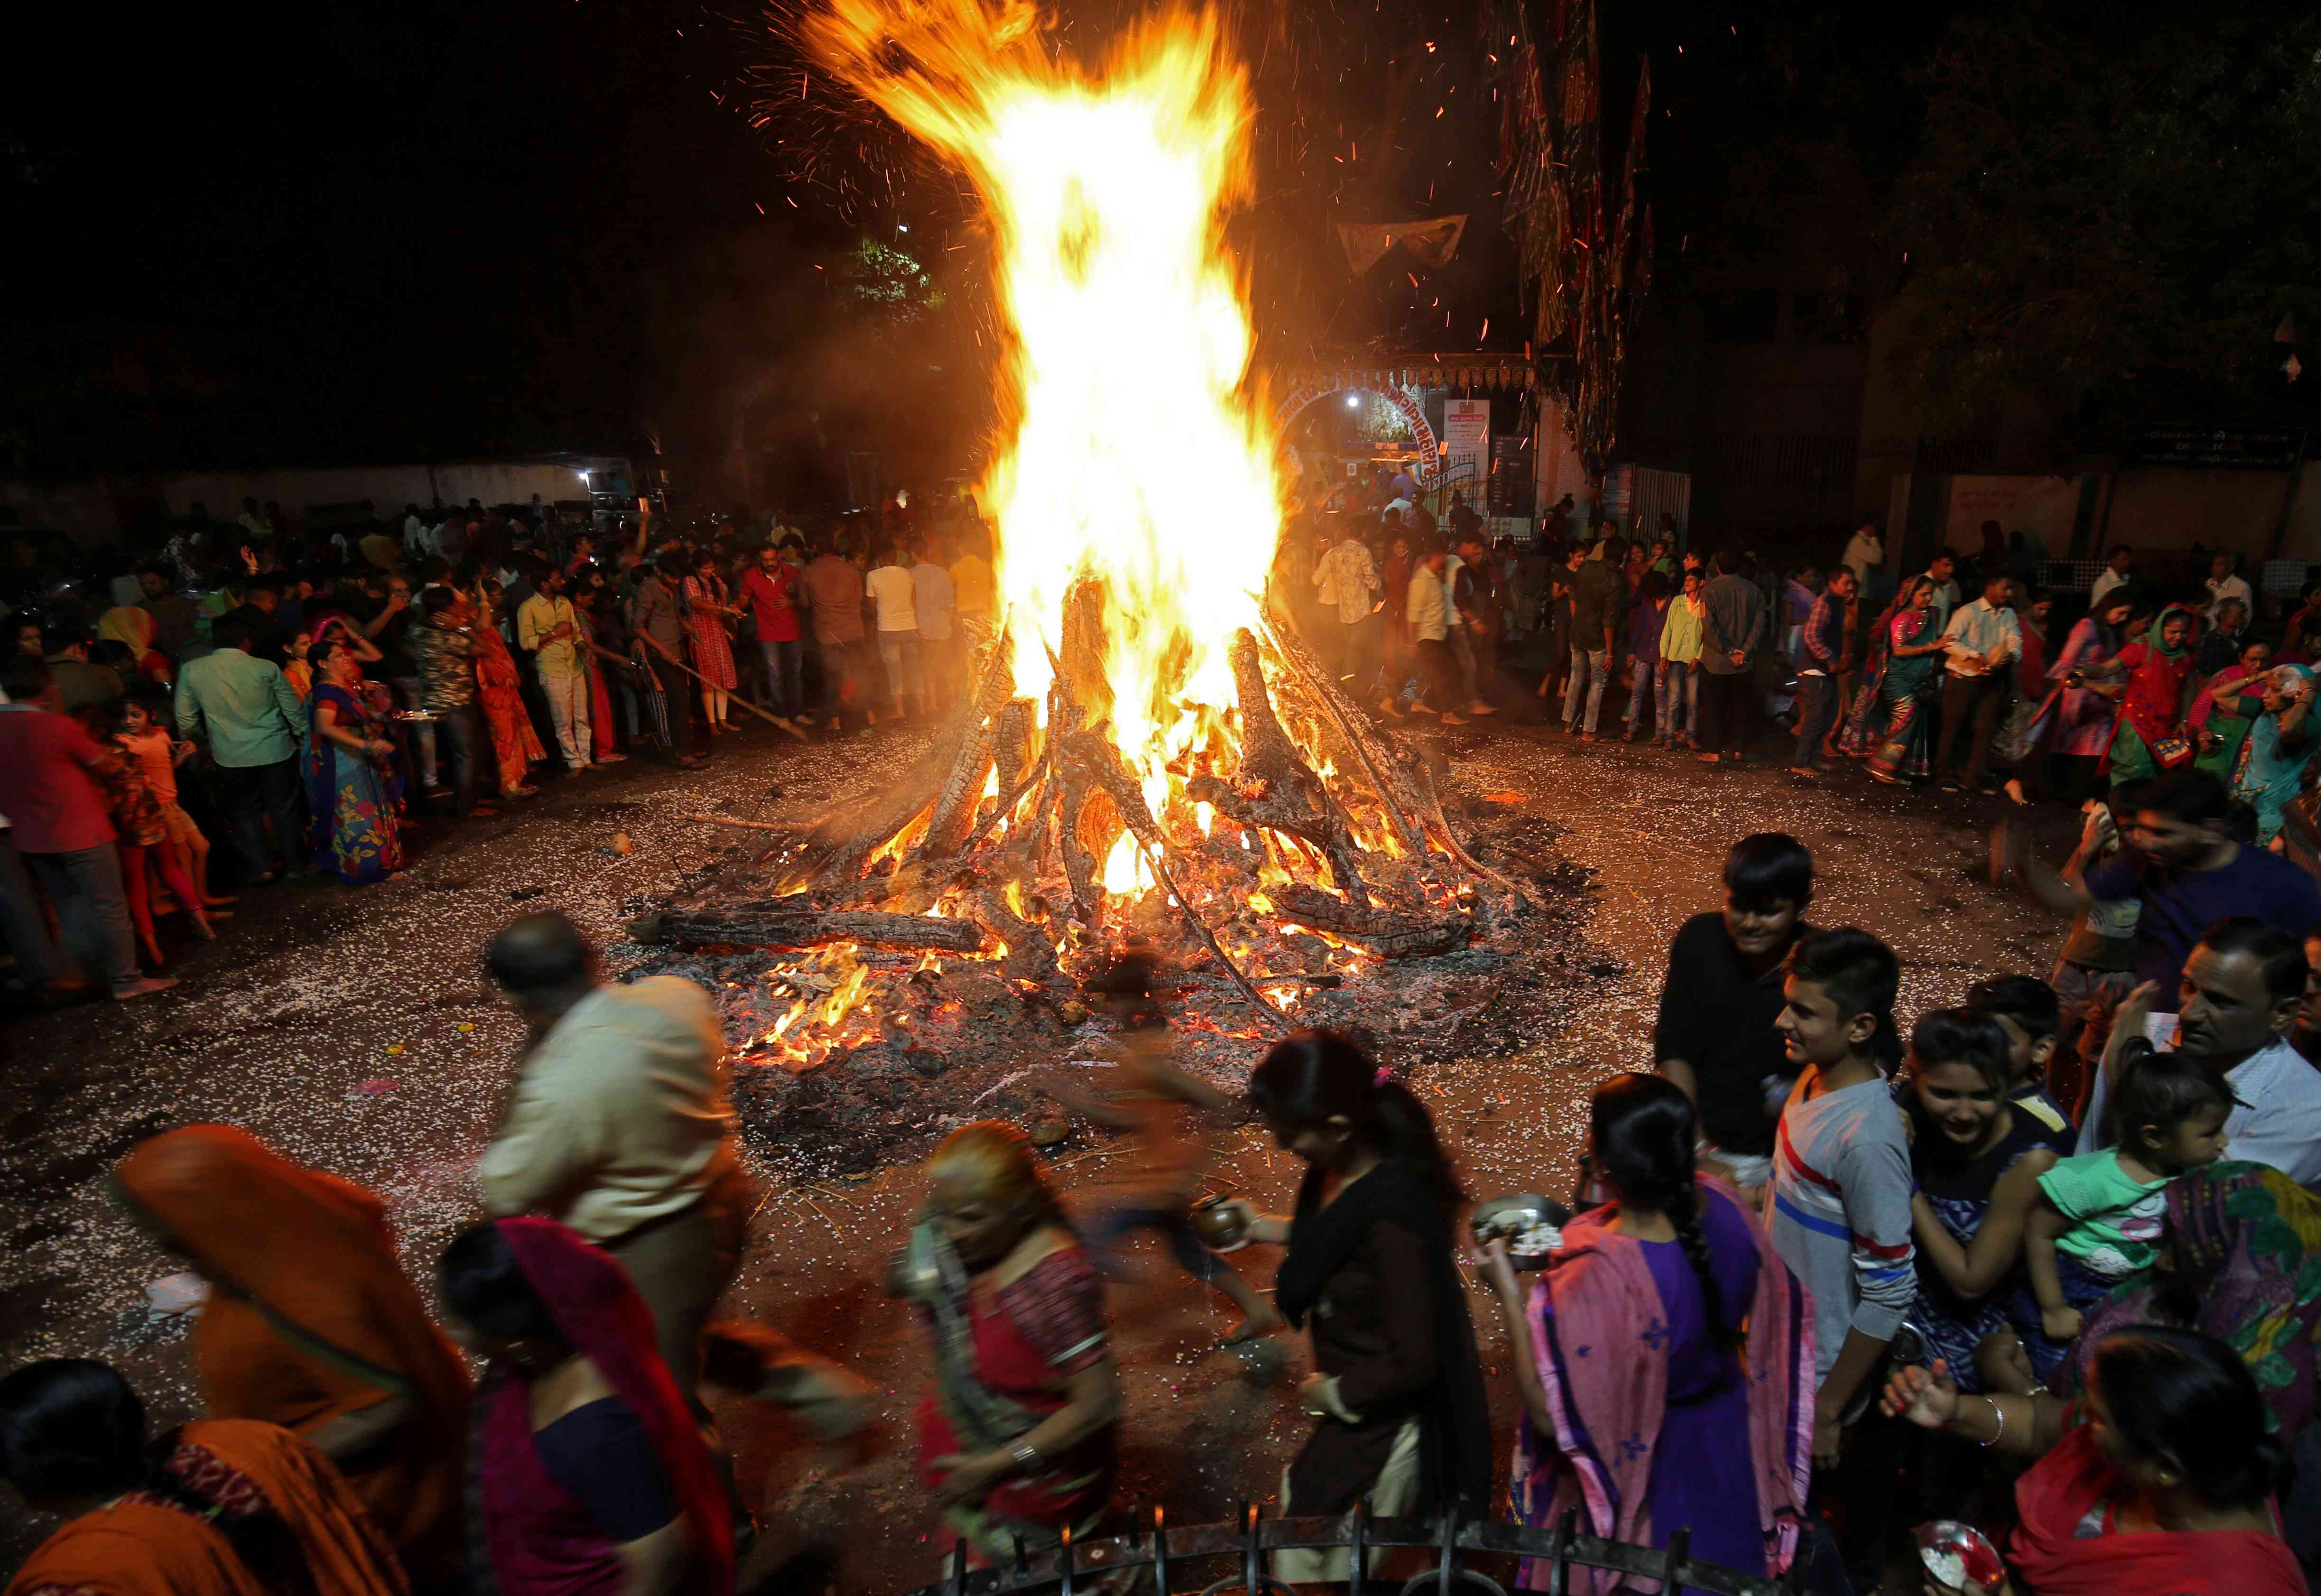 Devotees walk around a bonfire during a ritual called Holika Dahan in Ahmedabad on Wednesday night. | Credit: Reuters